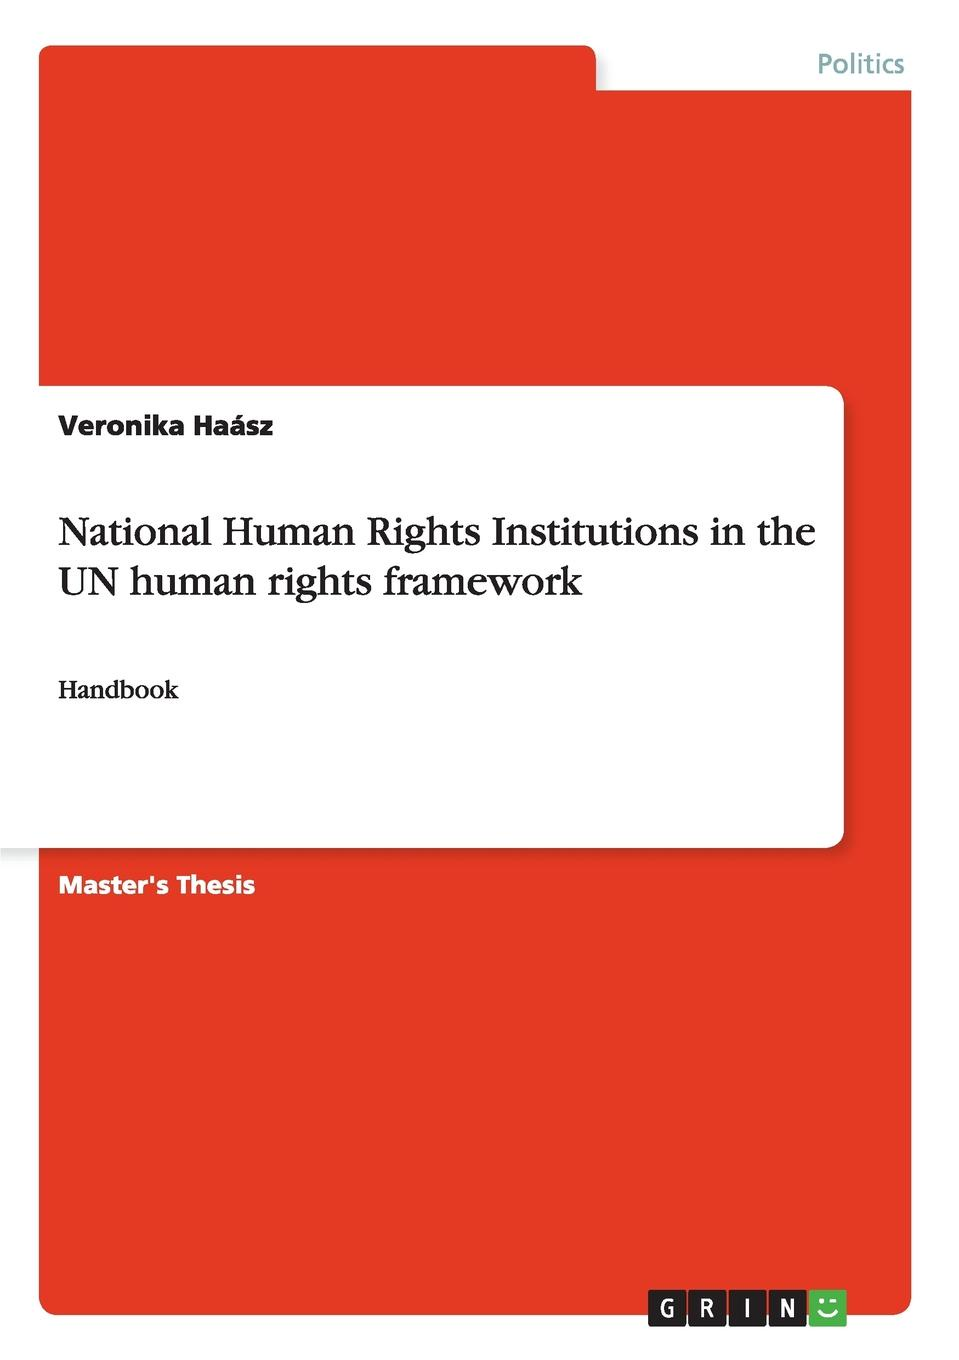 цены на Veronika Haász National Human Rights Institutions in the UN human rights framework  в интернет-магазинах